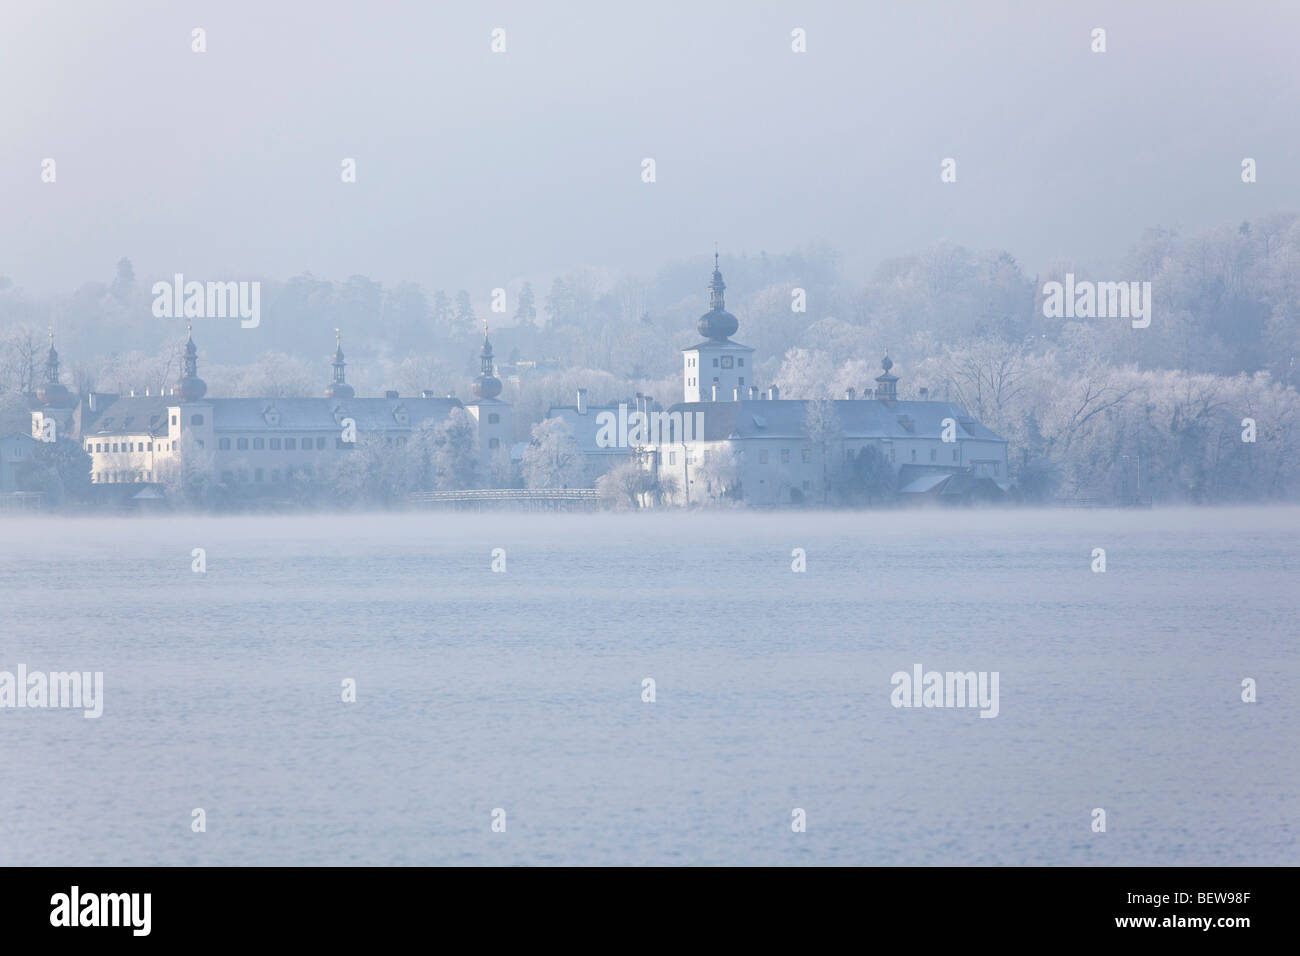 Traunsee and Castle Ort in foggy weather, Gmunden, Austria - Stock Image